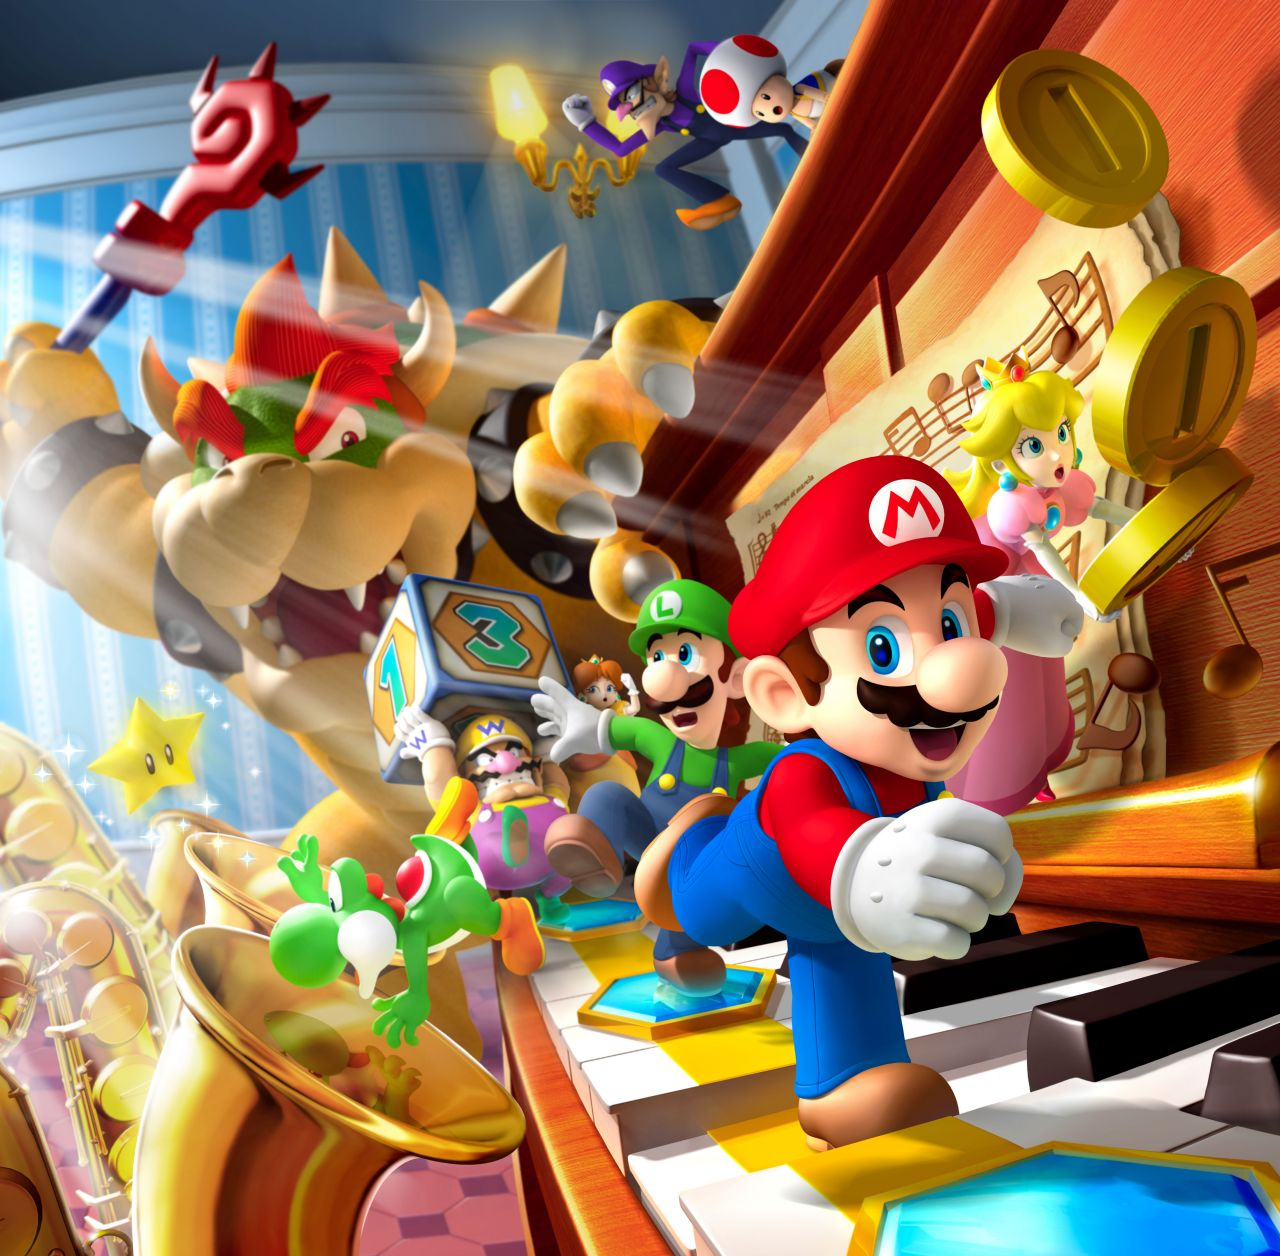 Mario amp Friends on HD Wallpaper